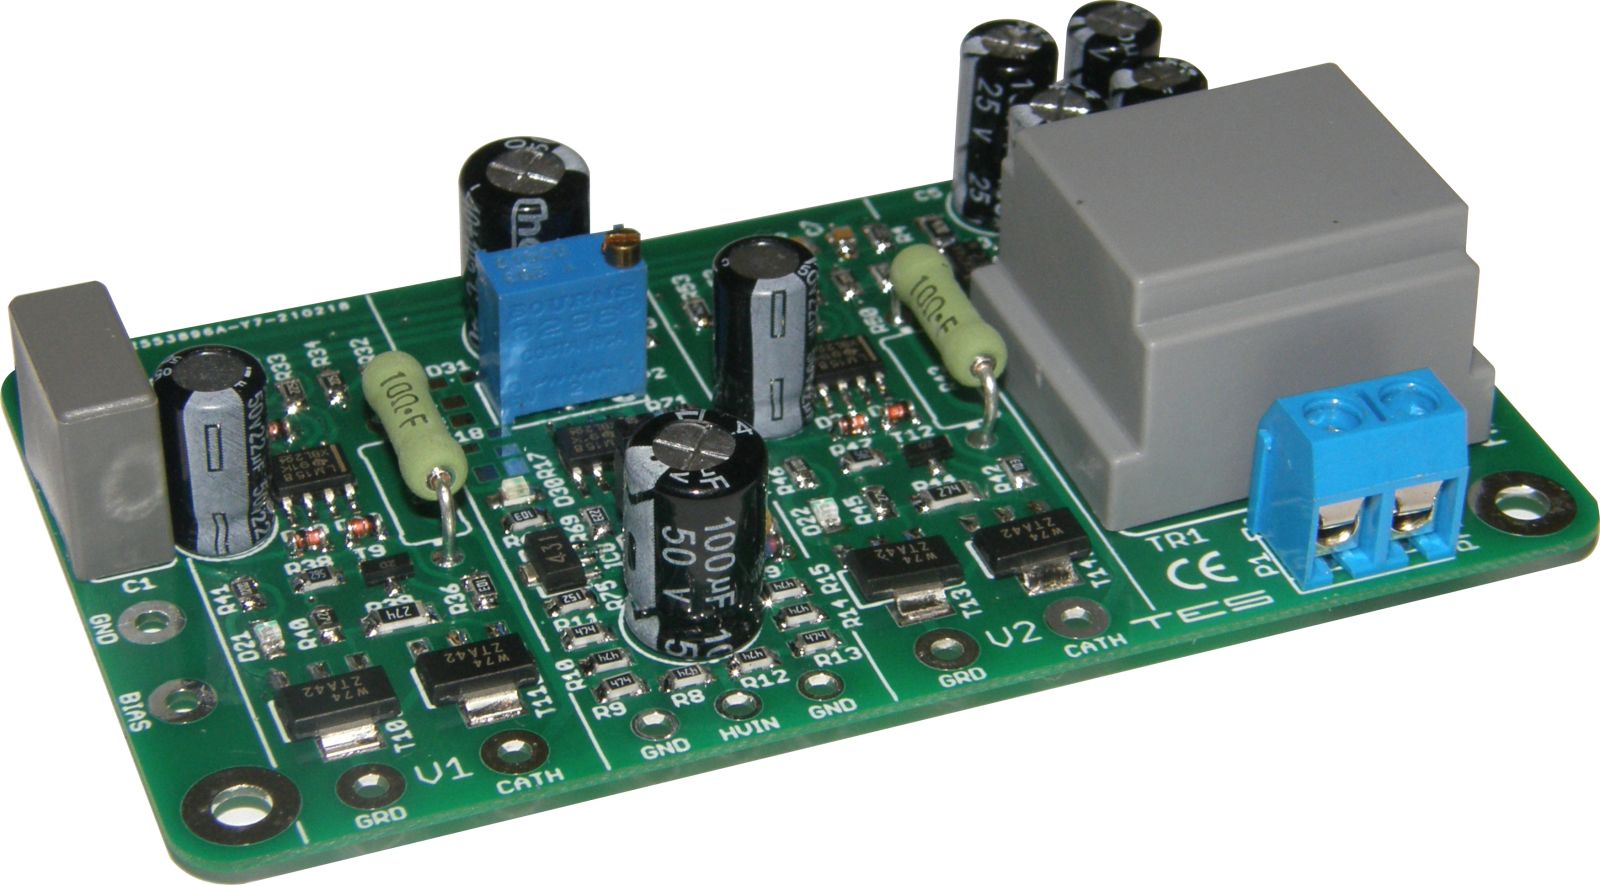 Module AB-Di for 2 tubes, PP & PPP amps, with a 6.3VAC isolation transformer for use in amps where the 6.3VAC filament supply is referenced to ground. Also requires bias supply from the amps circuit. TES